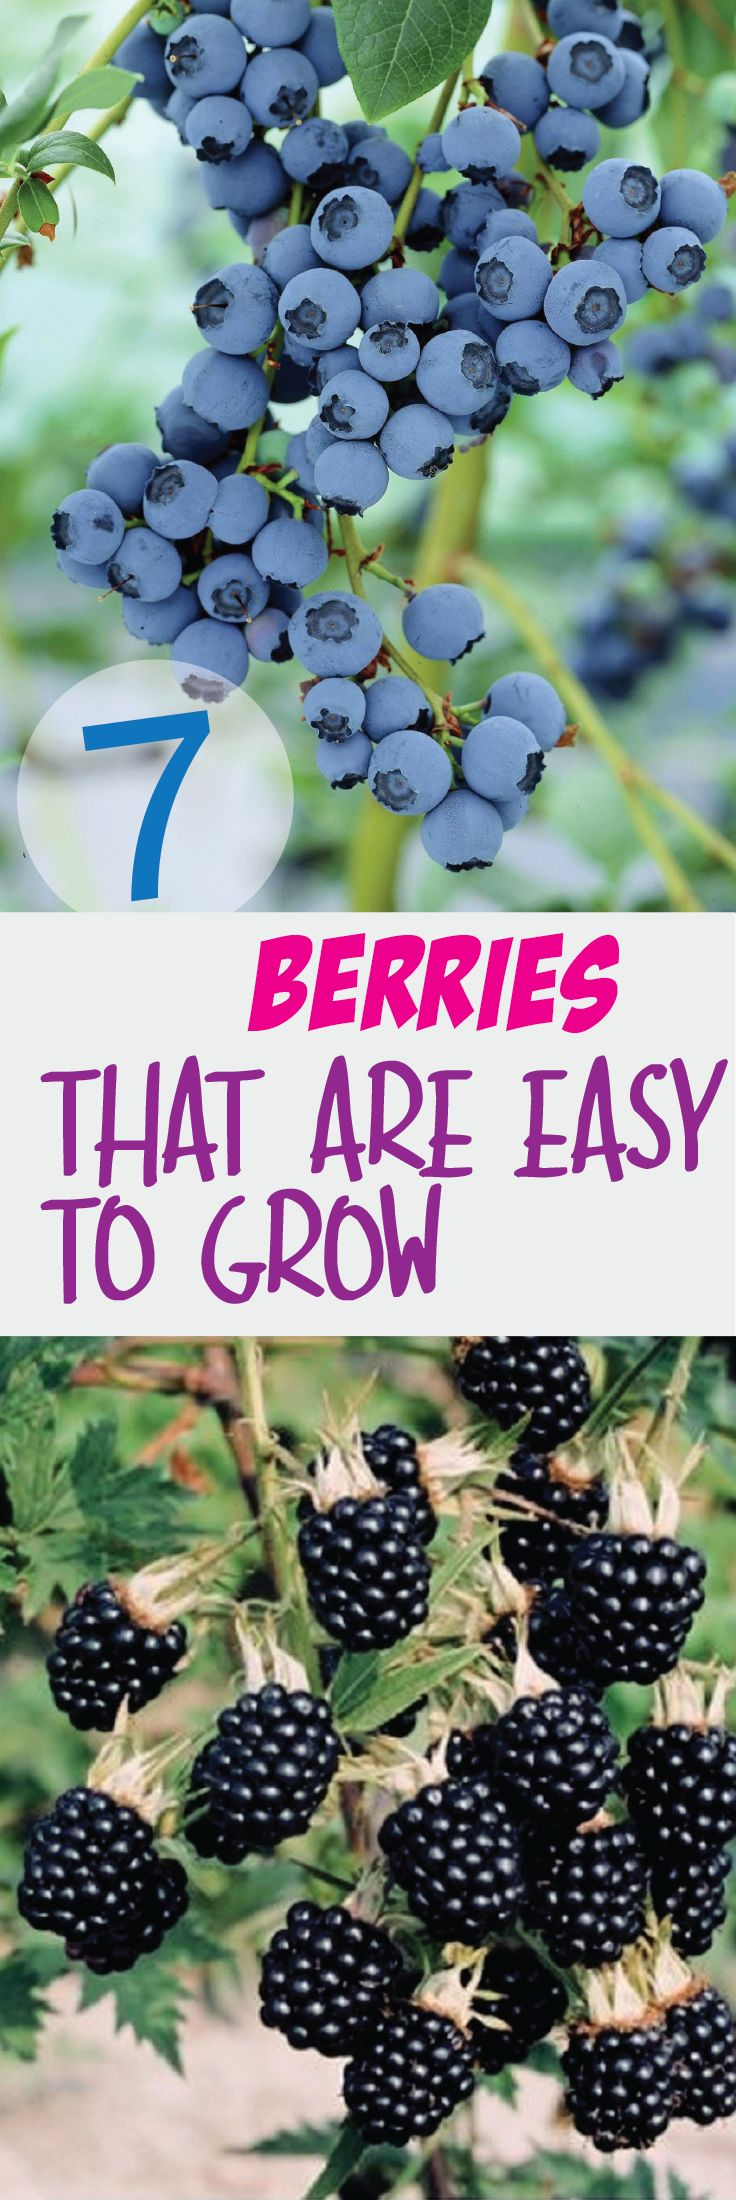 7 Berries That Are So Easy To Grow – Making DIY Fun